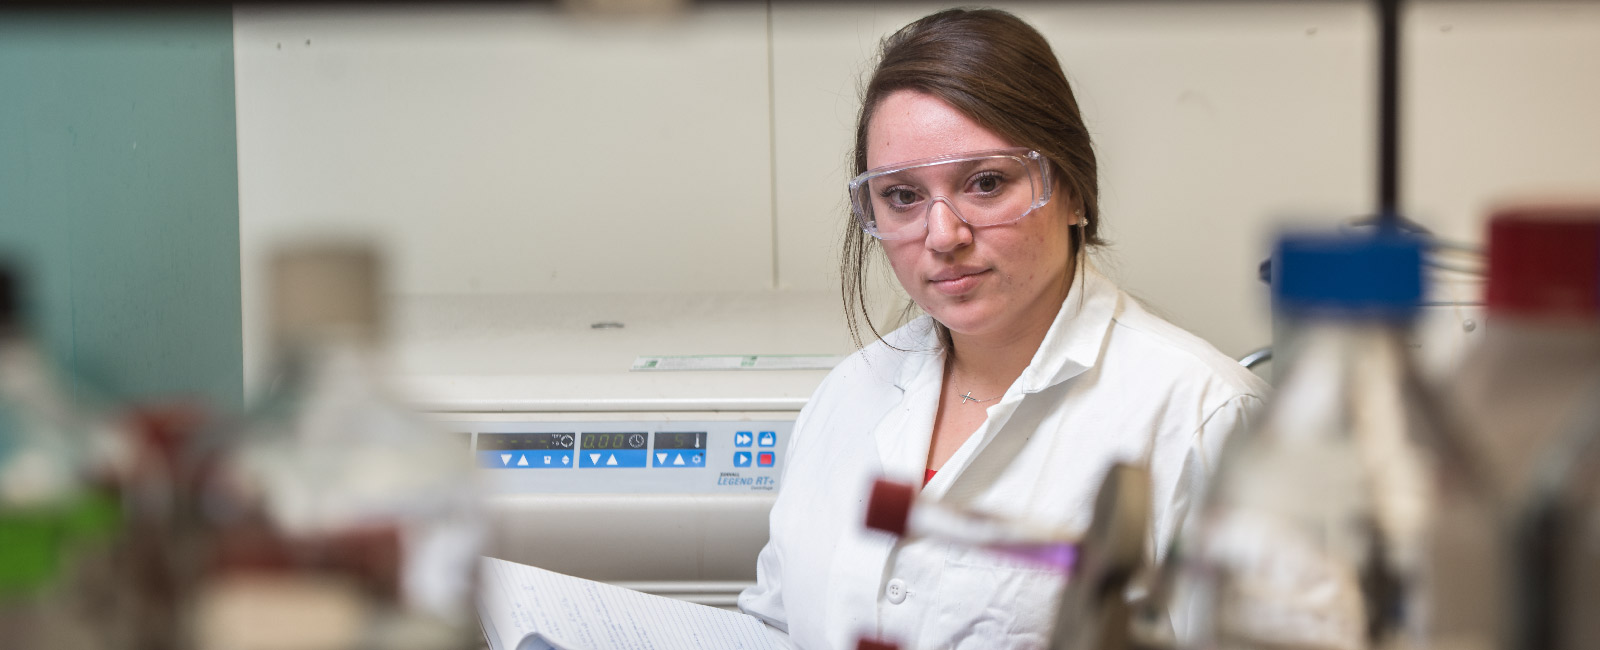 Graduate student working in a research laboratory